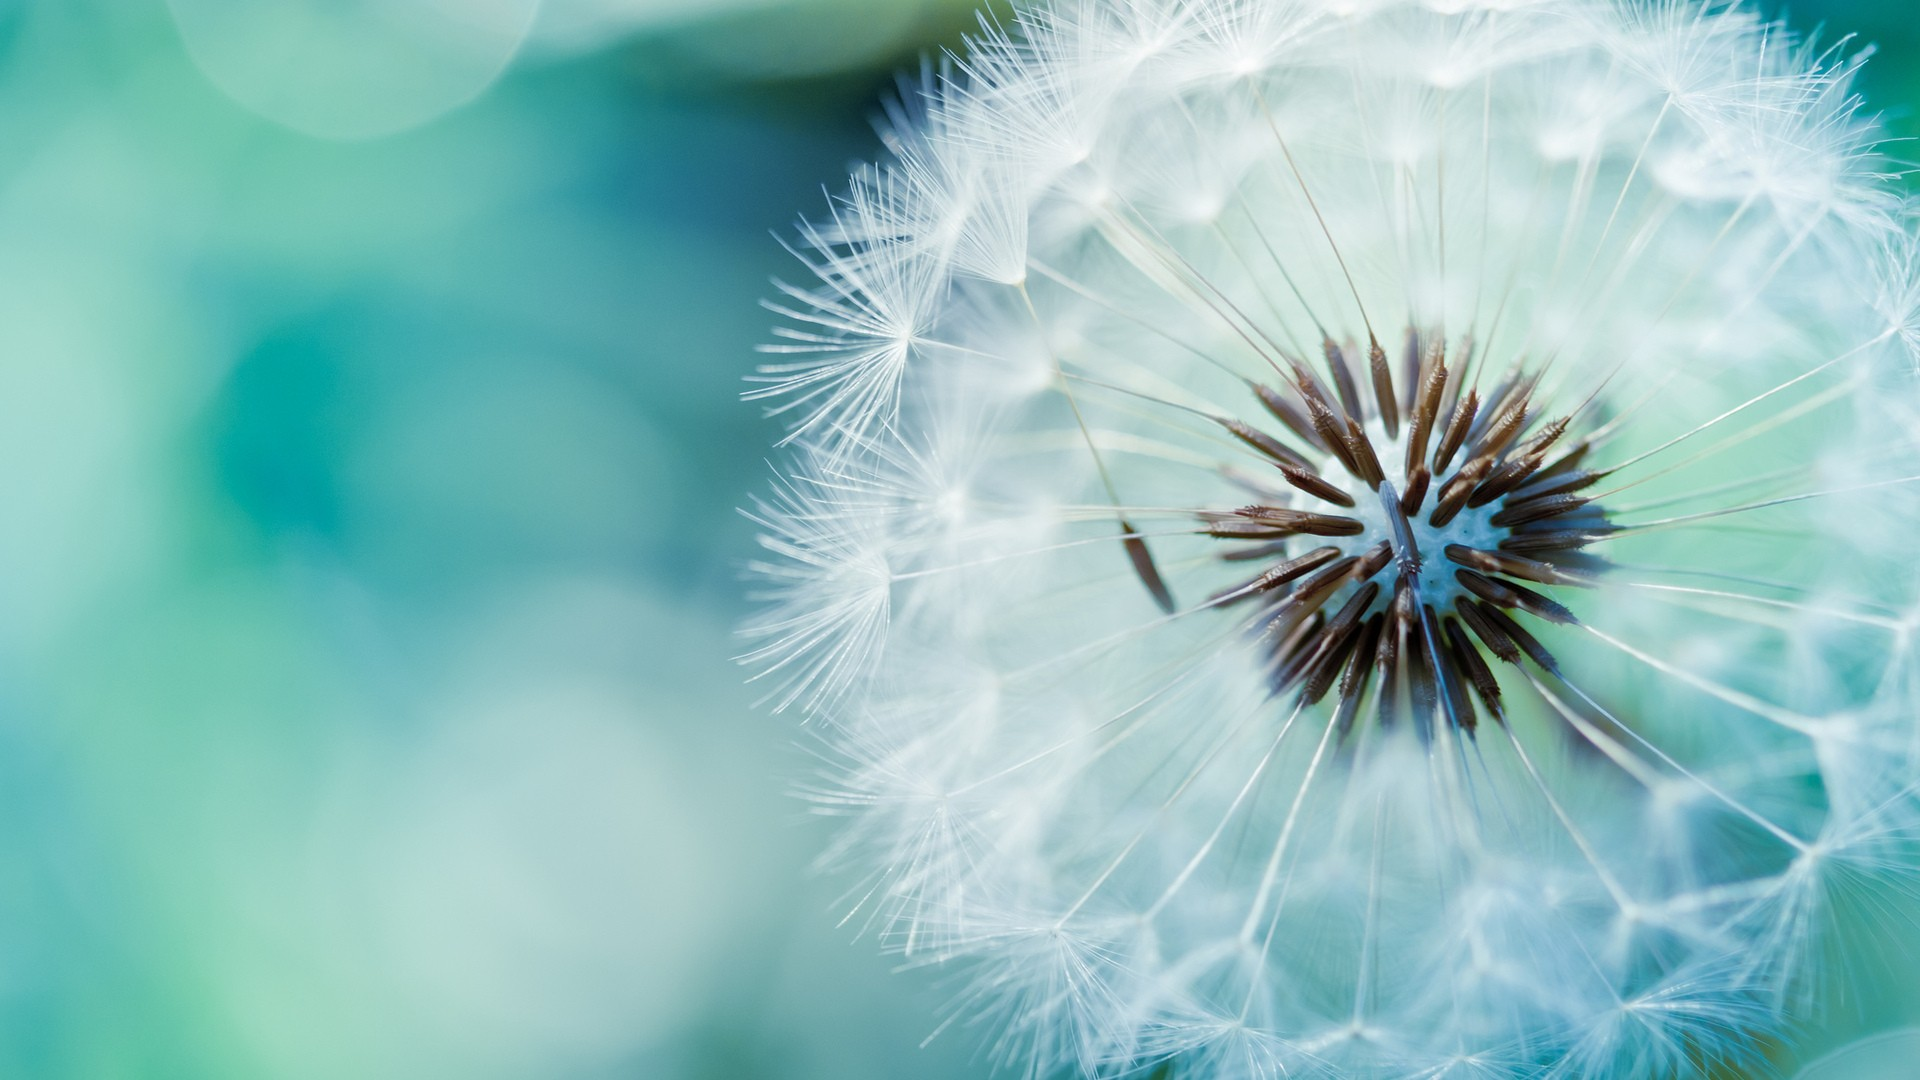 dandelions flower wallpaper background